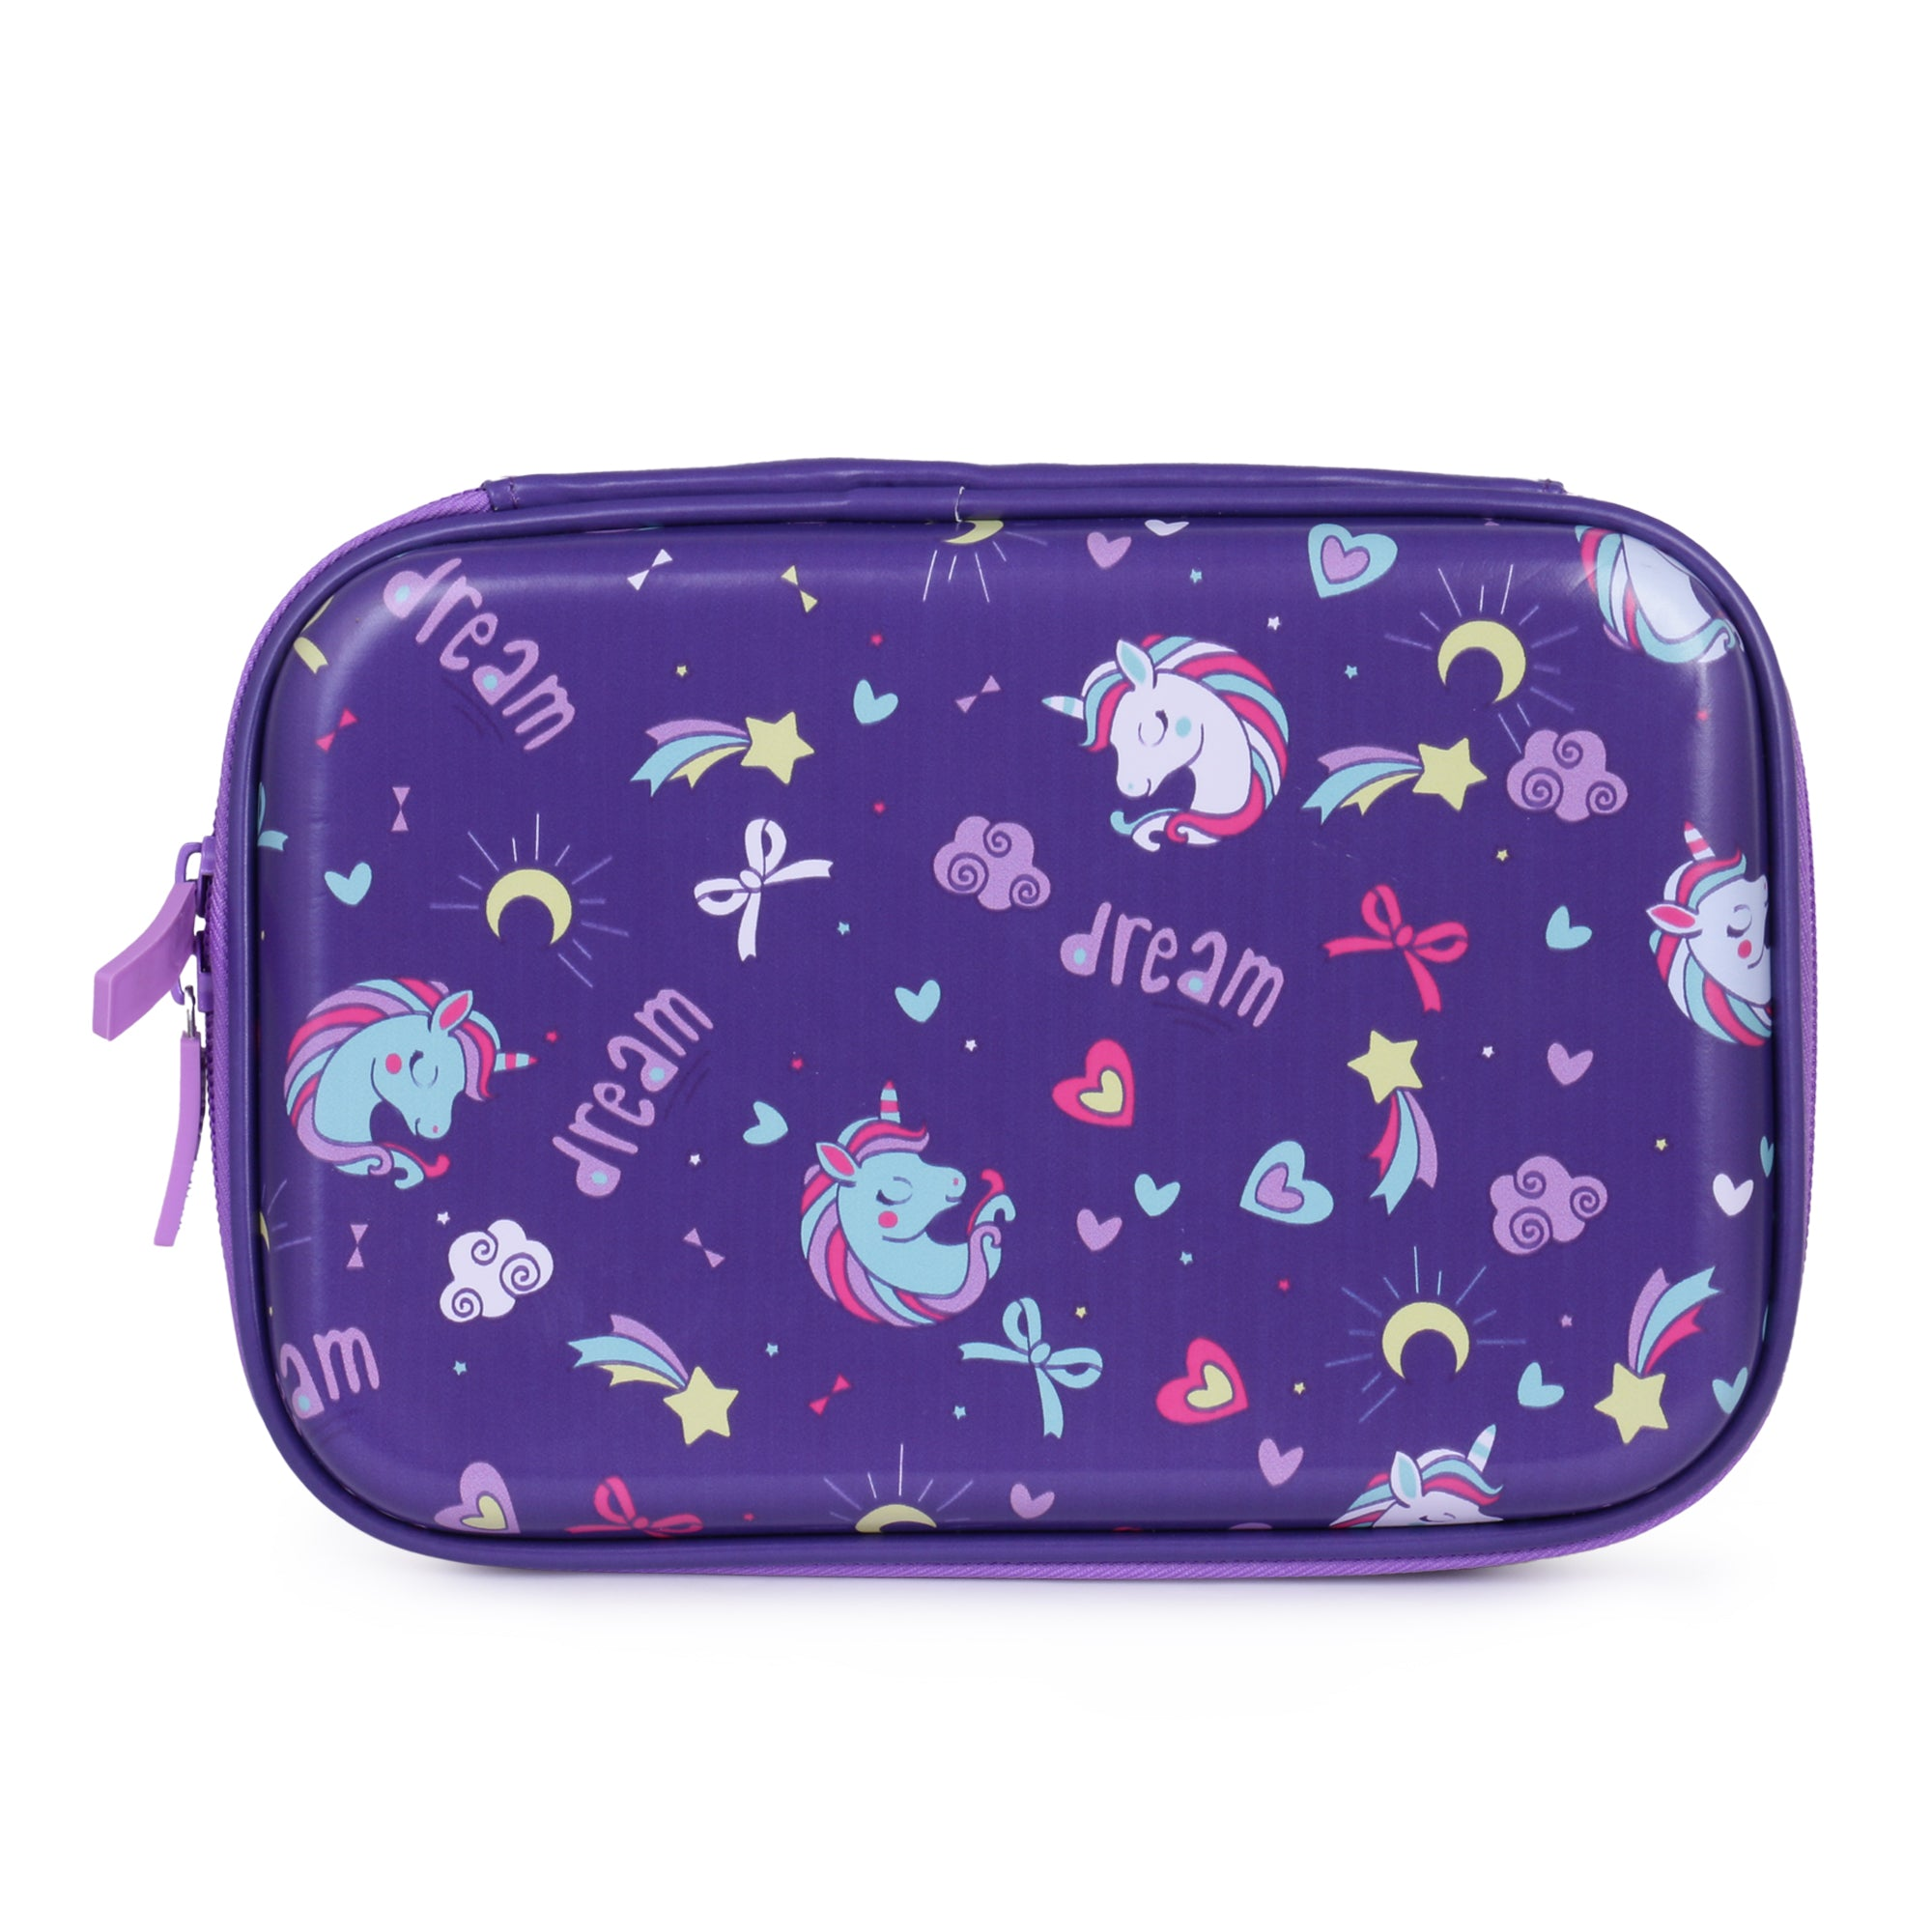 Hardtop Pencil Case Organizer Unicorn BTS